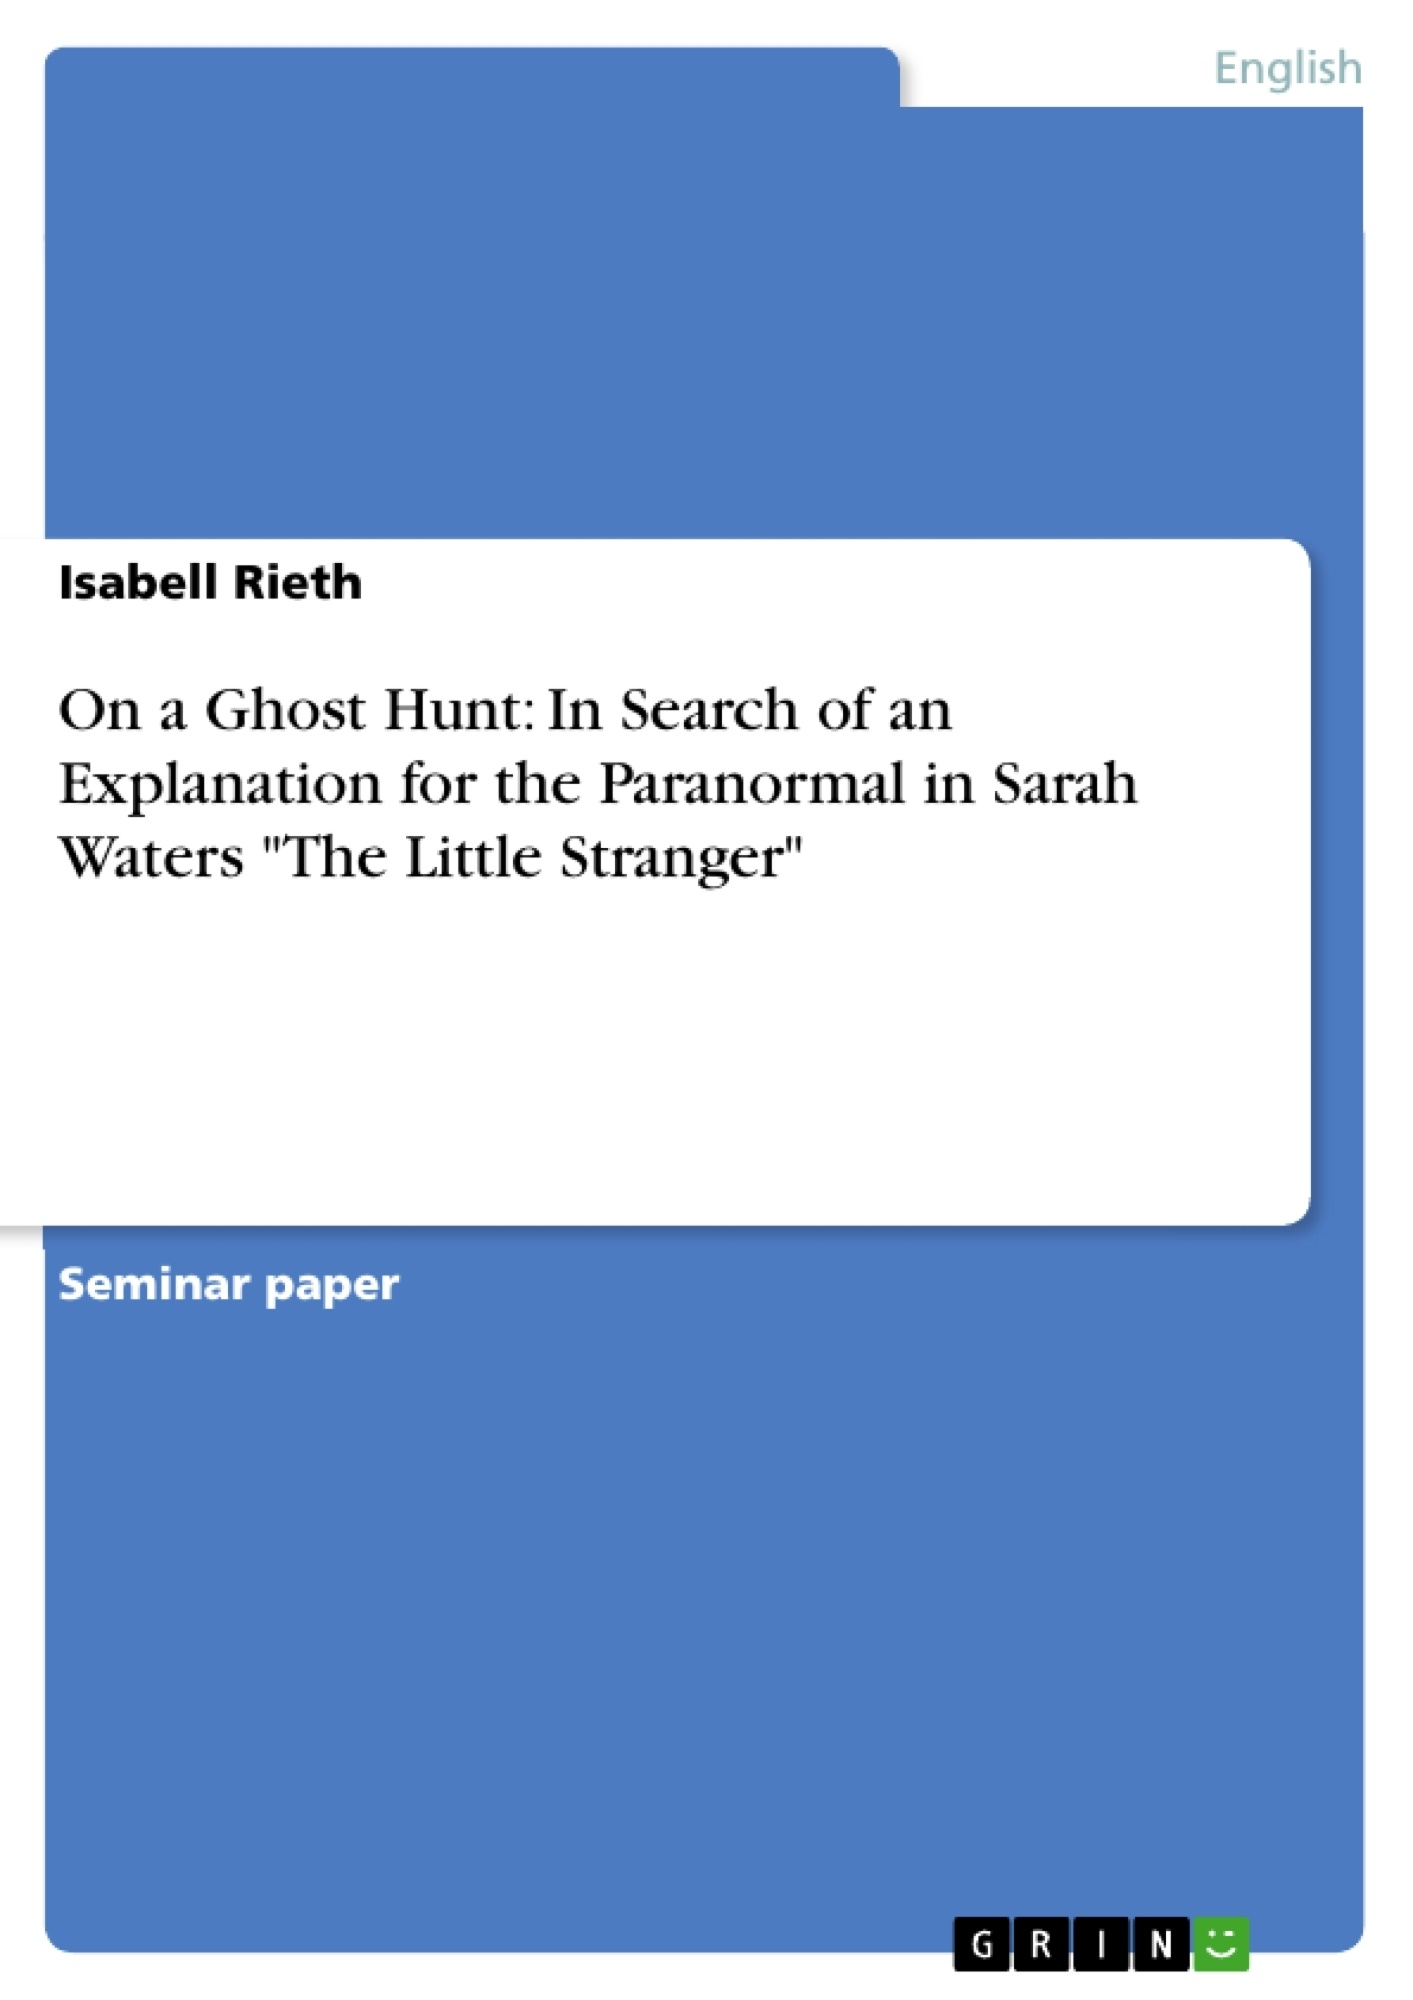 """Title: On a Ghost Hunt: In Search of an Explanation for the Paranormal in Sarah Waters """"The Little Stranger"""""""